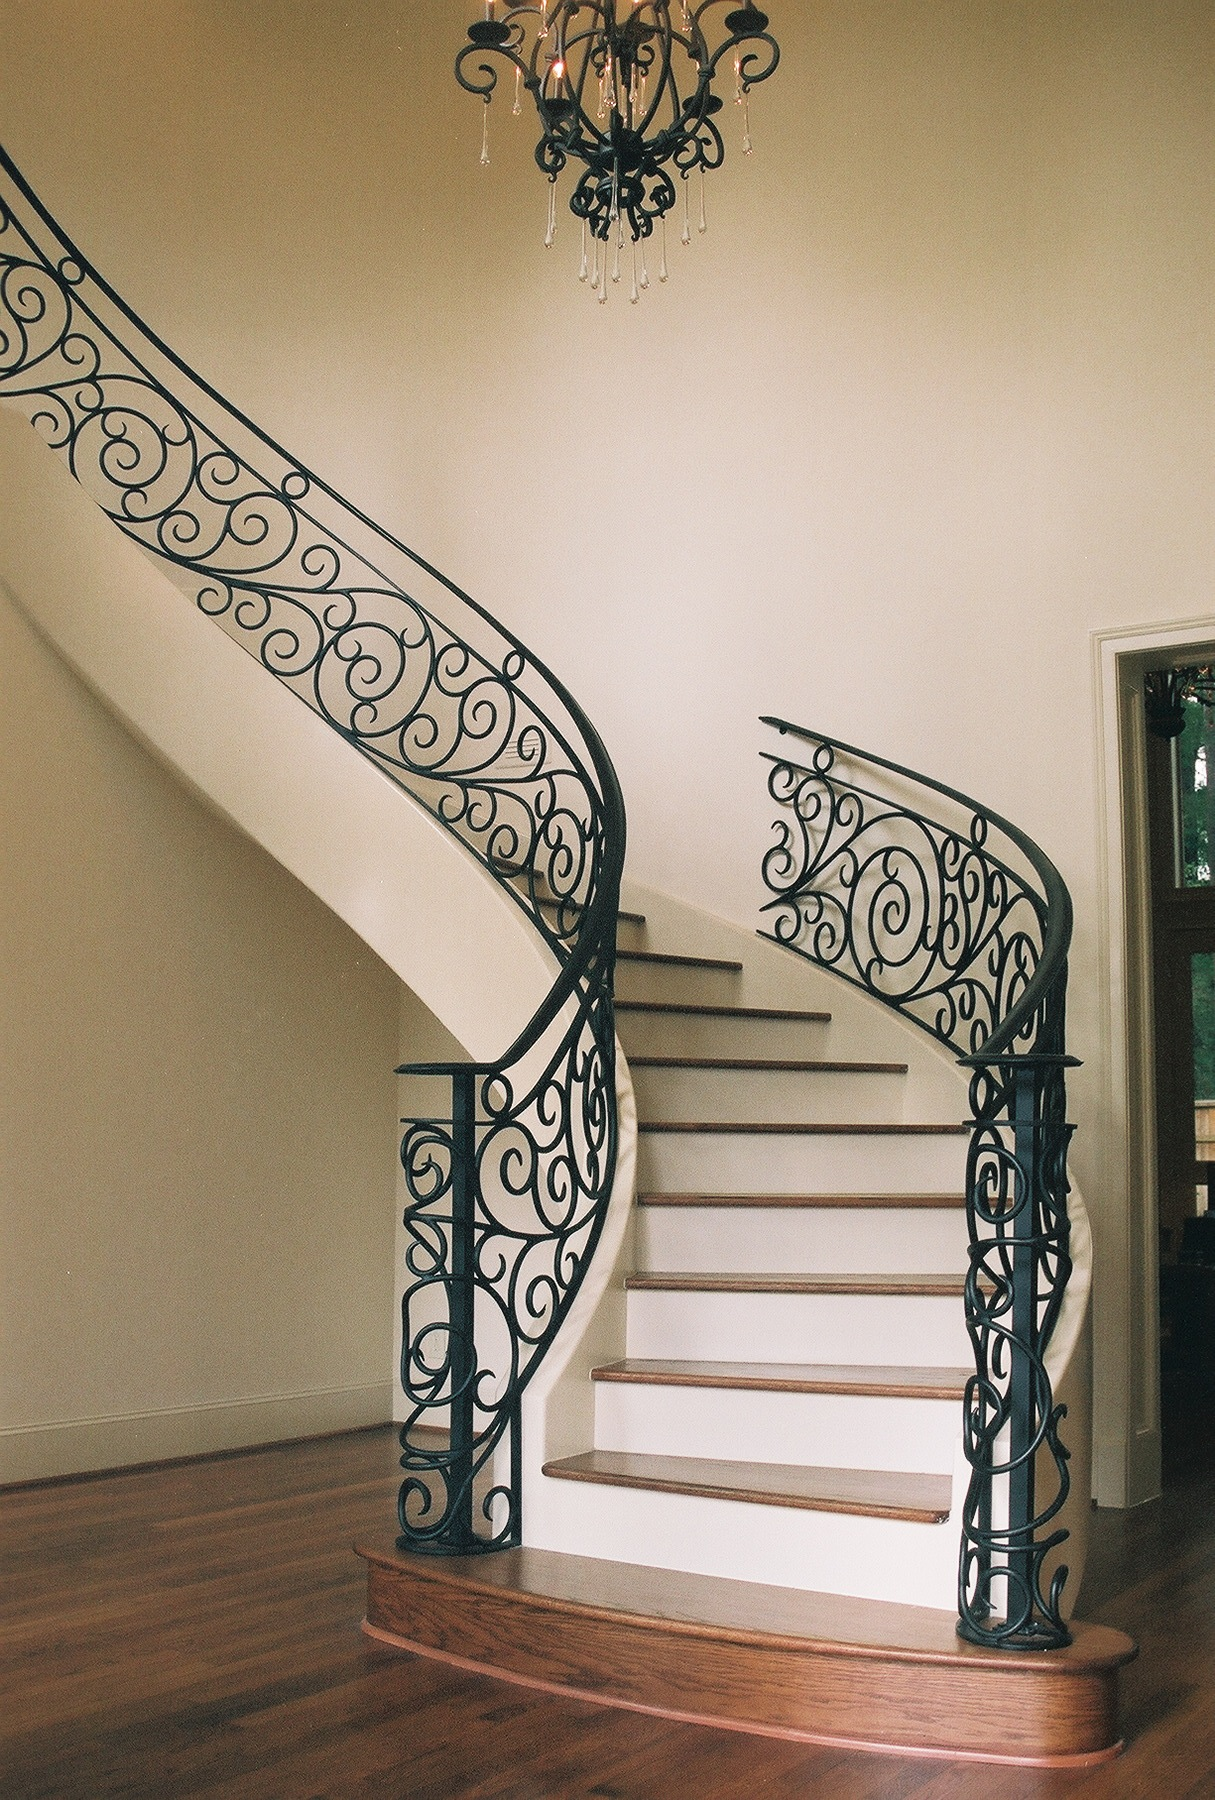 Wrought Iron Staircase Designs Staircases On Pinterest Railings Stair Railing And Stairs